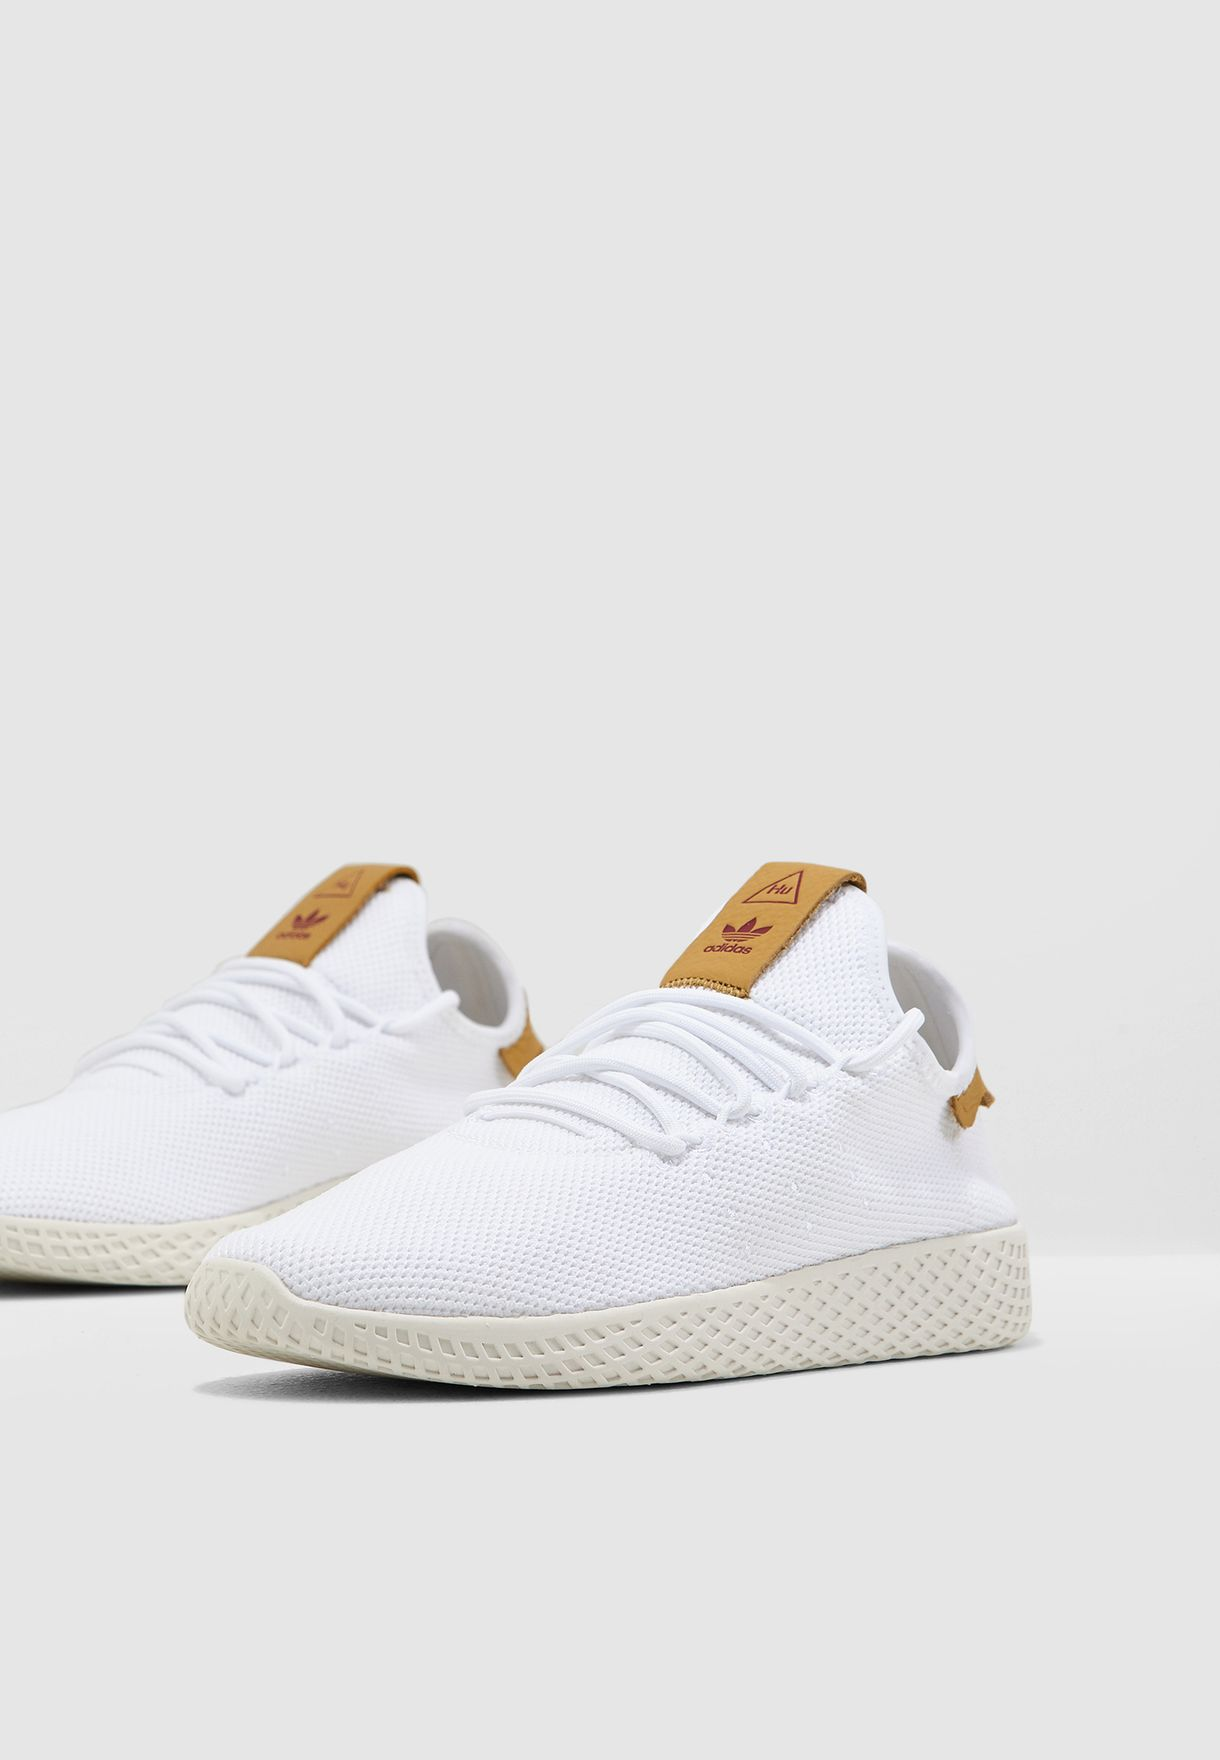 b72fea1b2abec Shop adidas Originals white Pharrell Williams Tennis HU D96444 for ...